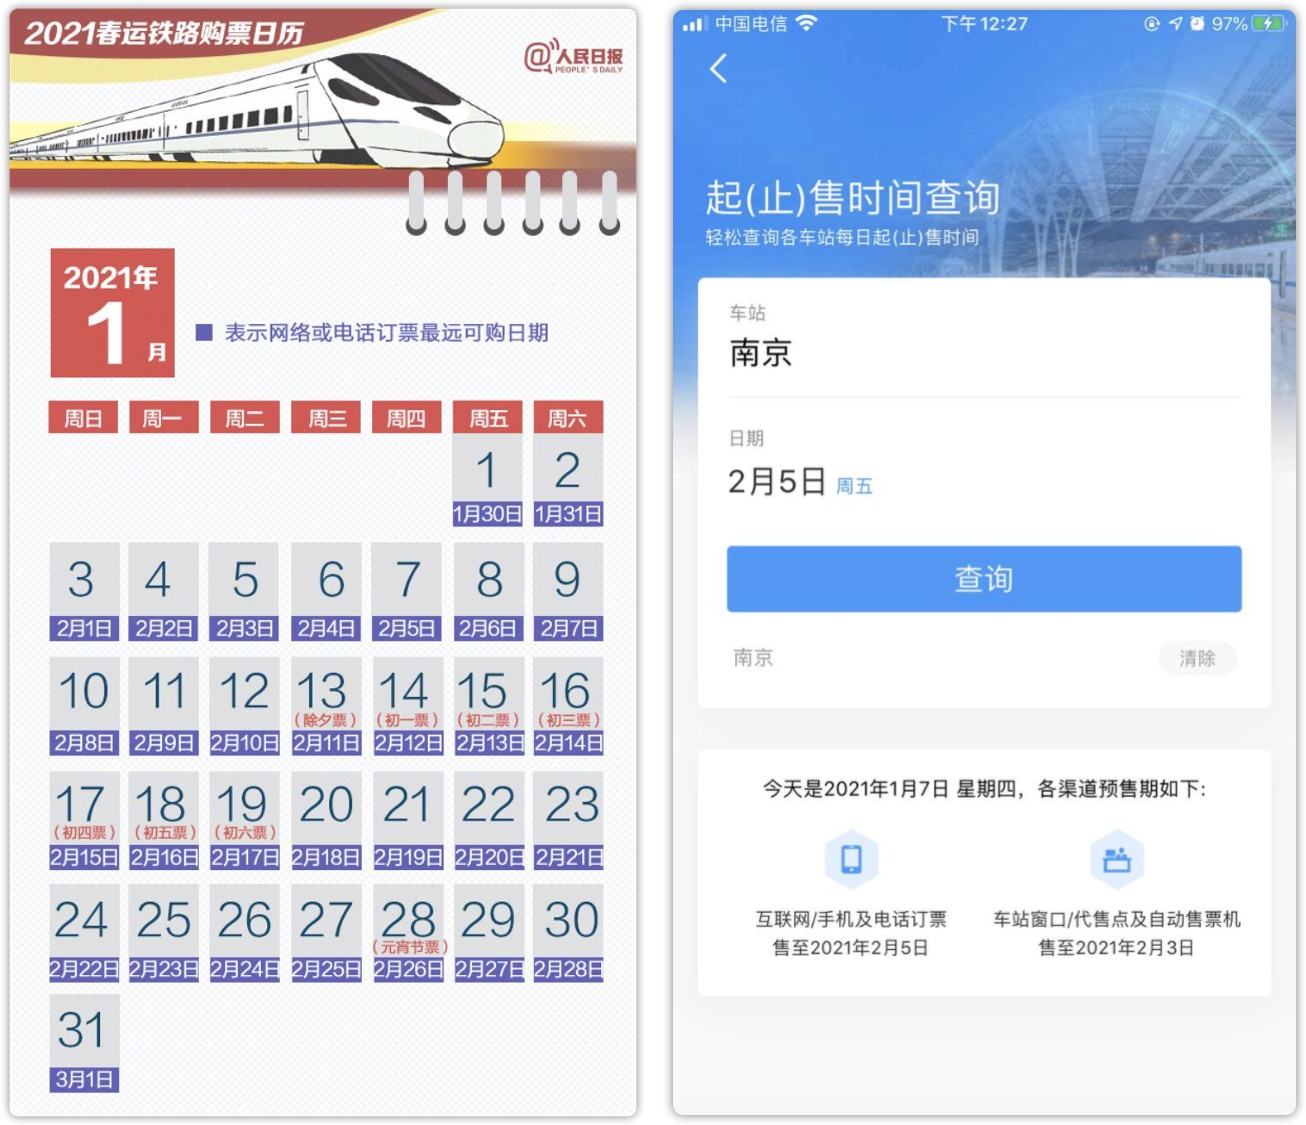 v2 ccbc9f6f861c43a381b4955855f938cb img 000 - Travel is closed in 2021, please accept this Spring Festival travel tips_detailed interpretation_latest information_hot events_36氪